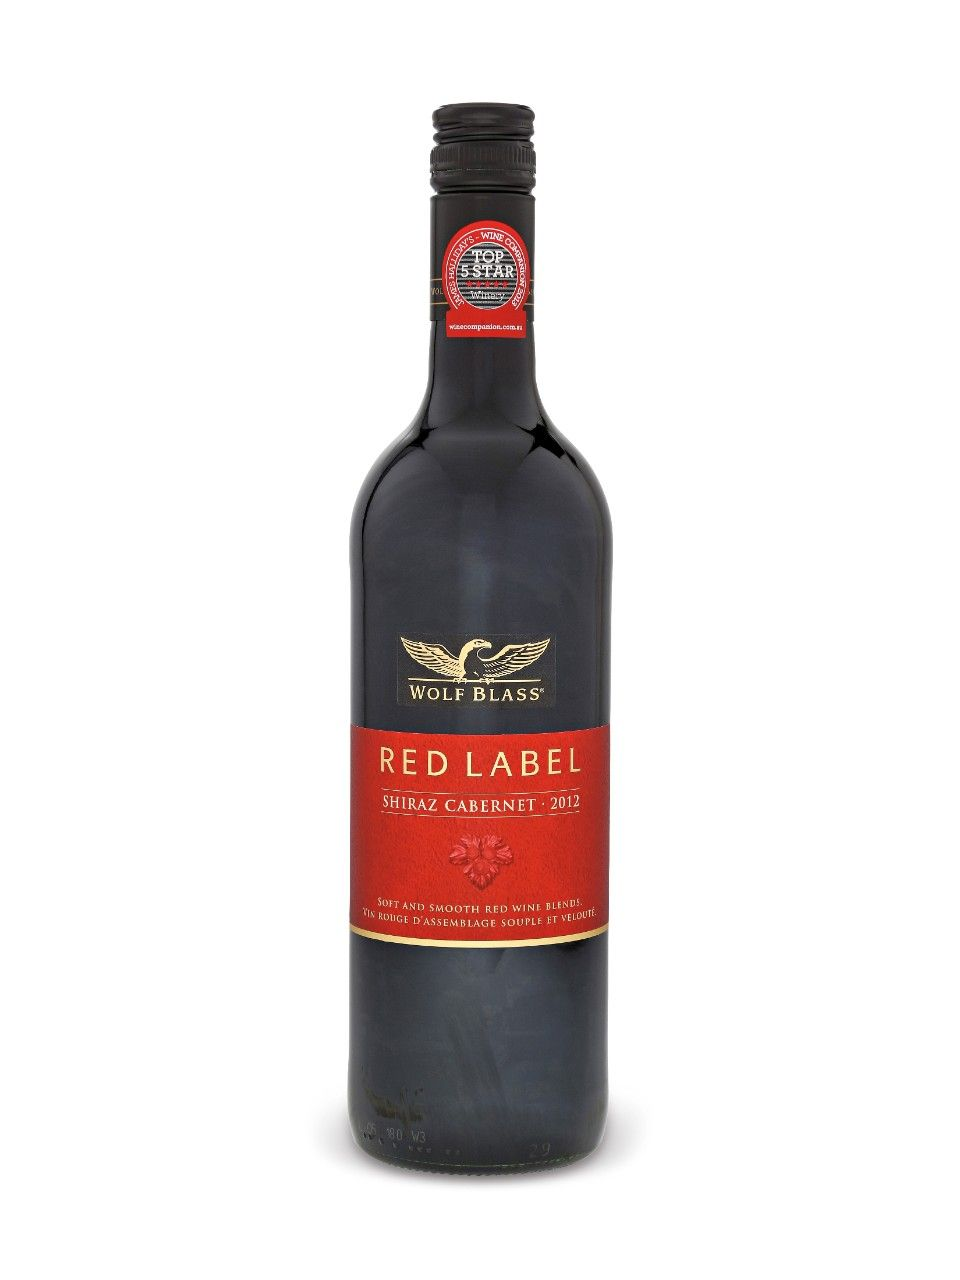 I Want To Try This Dry Australian Red Wine Blend Wolf Blass Red Label Shiraz Cabernet Sauvignon Cabernet Cabernet Sauvignon Red Blend Wine